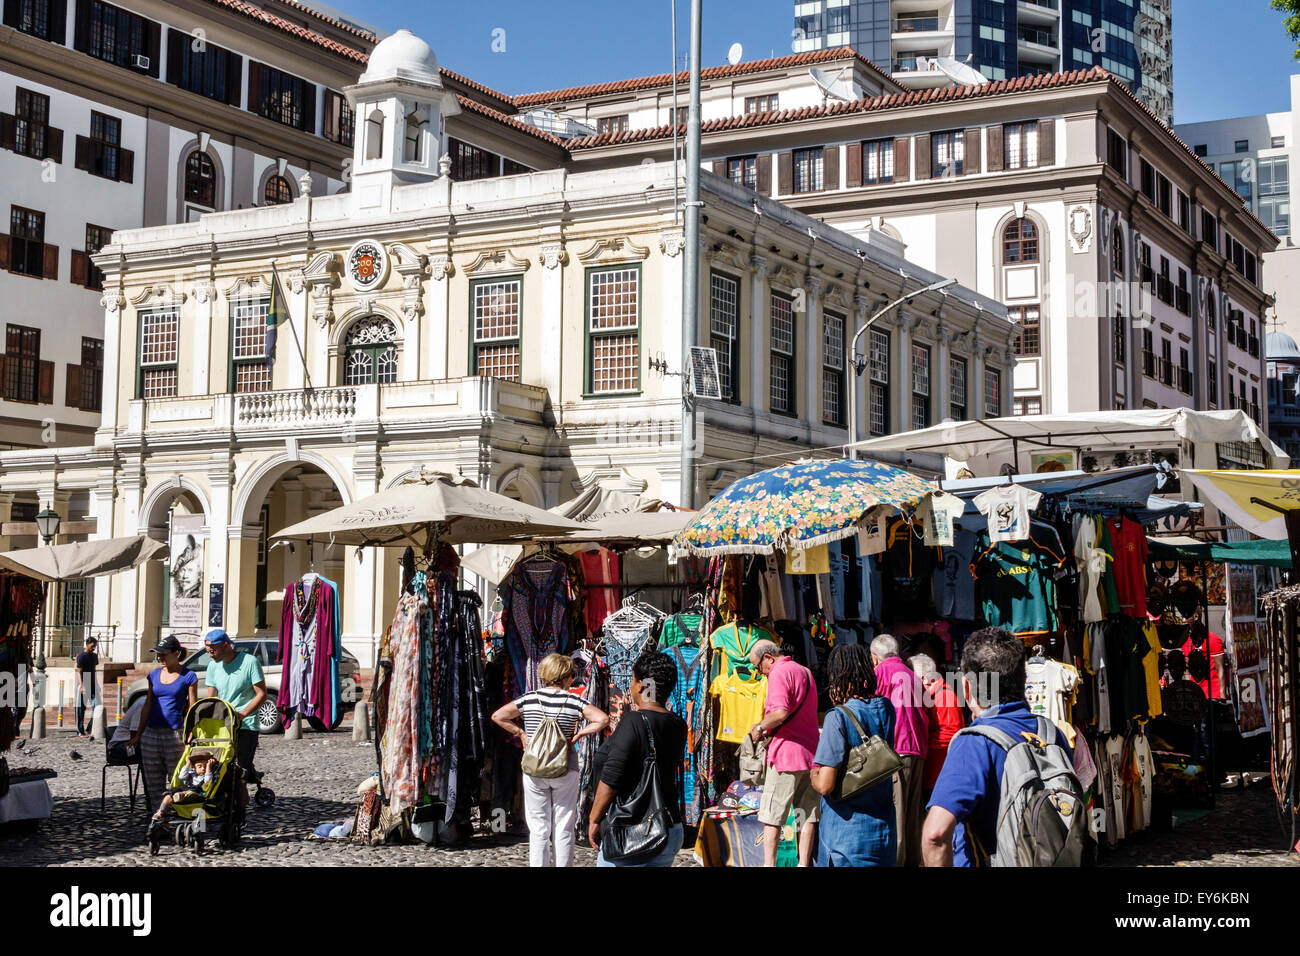 Cape Town South Africa African City Centre center Green Market Square historic vendors stalls sale crafts souvenirs - Stock Image